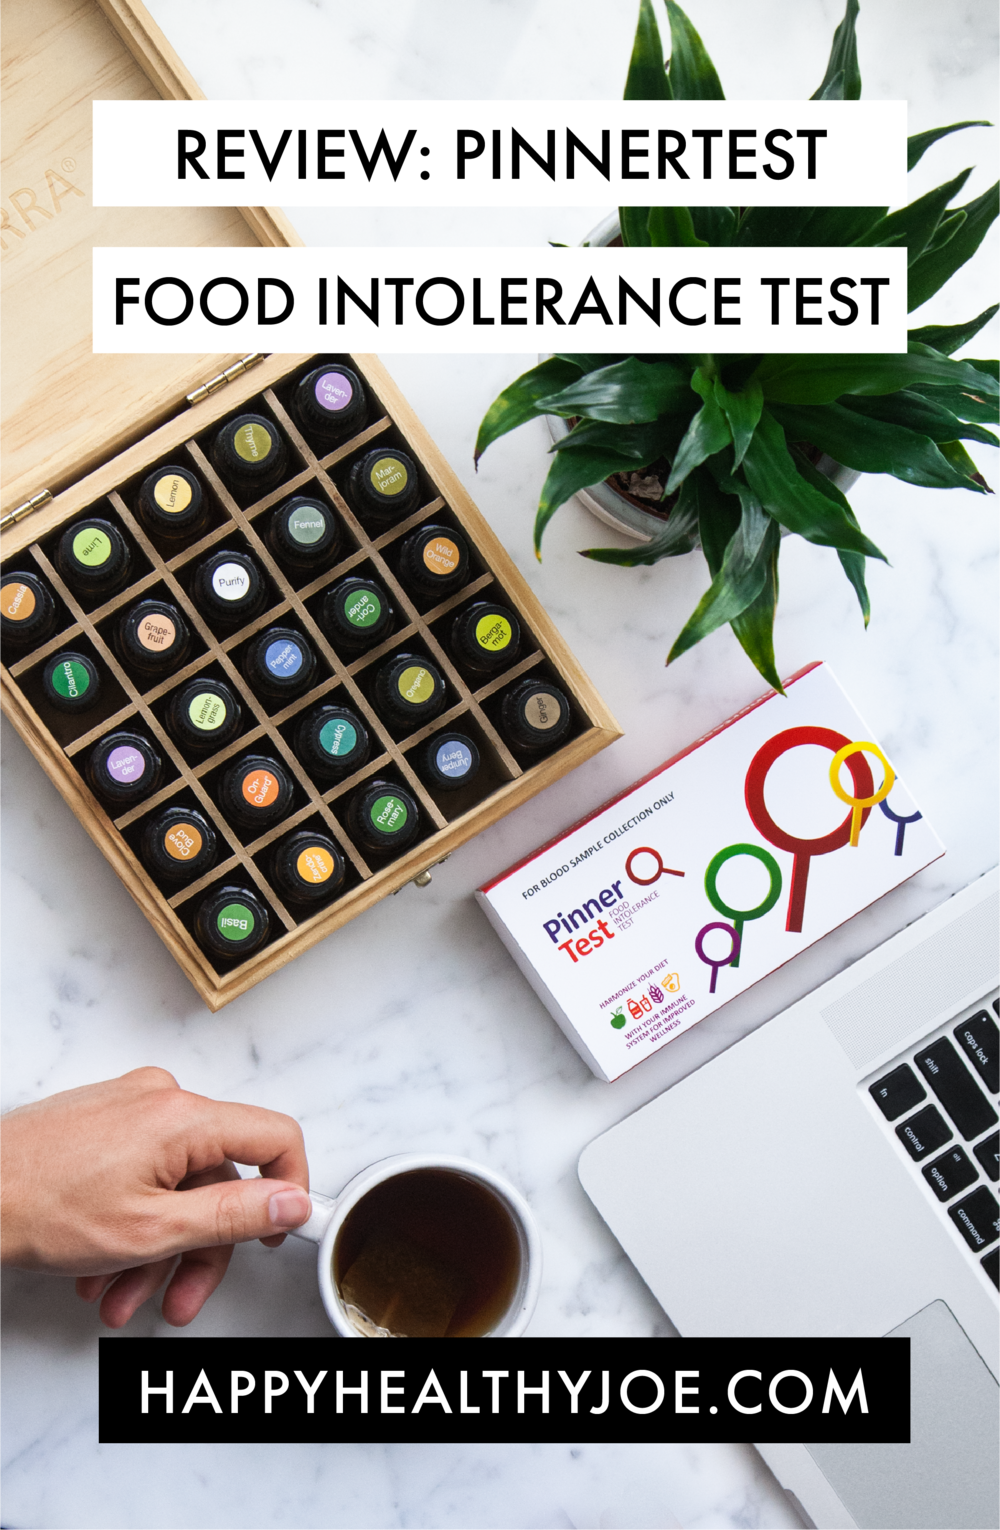 Pinnertest Food Intolerance Test Review: Allergies vs. Intolerances, My Results, & More!